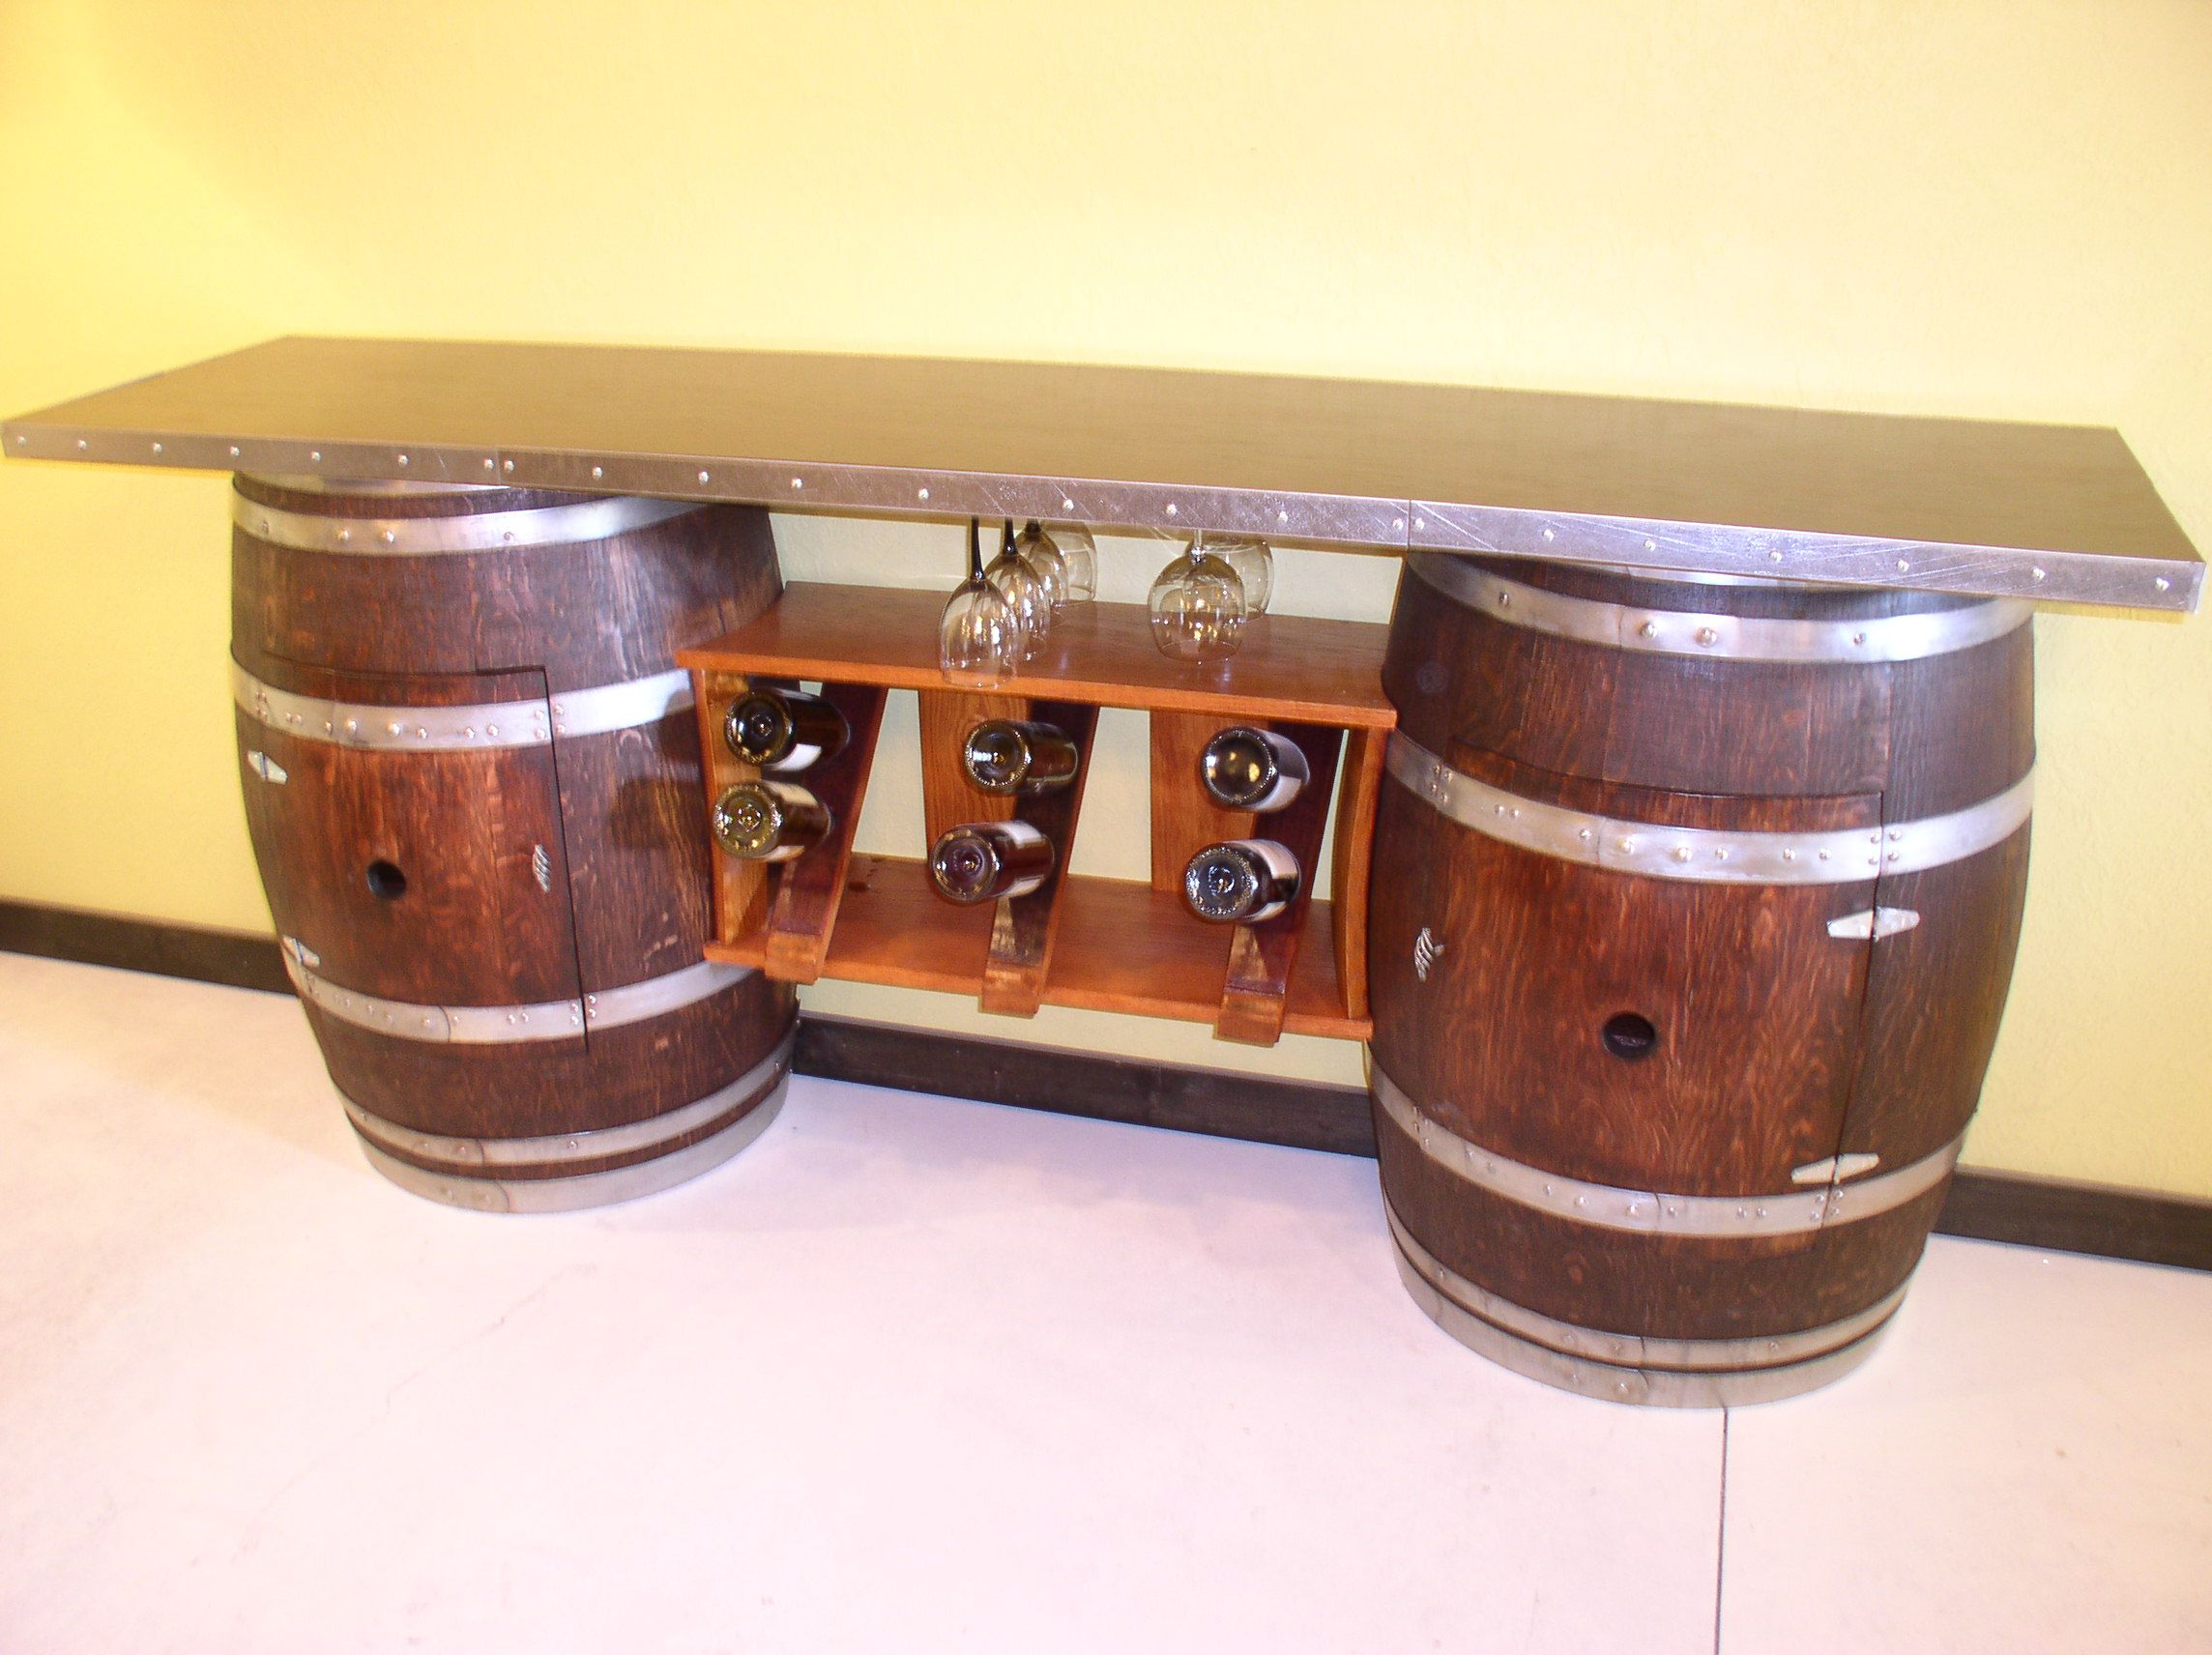 Diy wine barrel table - Find This Pin And More On A Barrel Of Fun Wine Bar Furniture With Sink